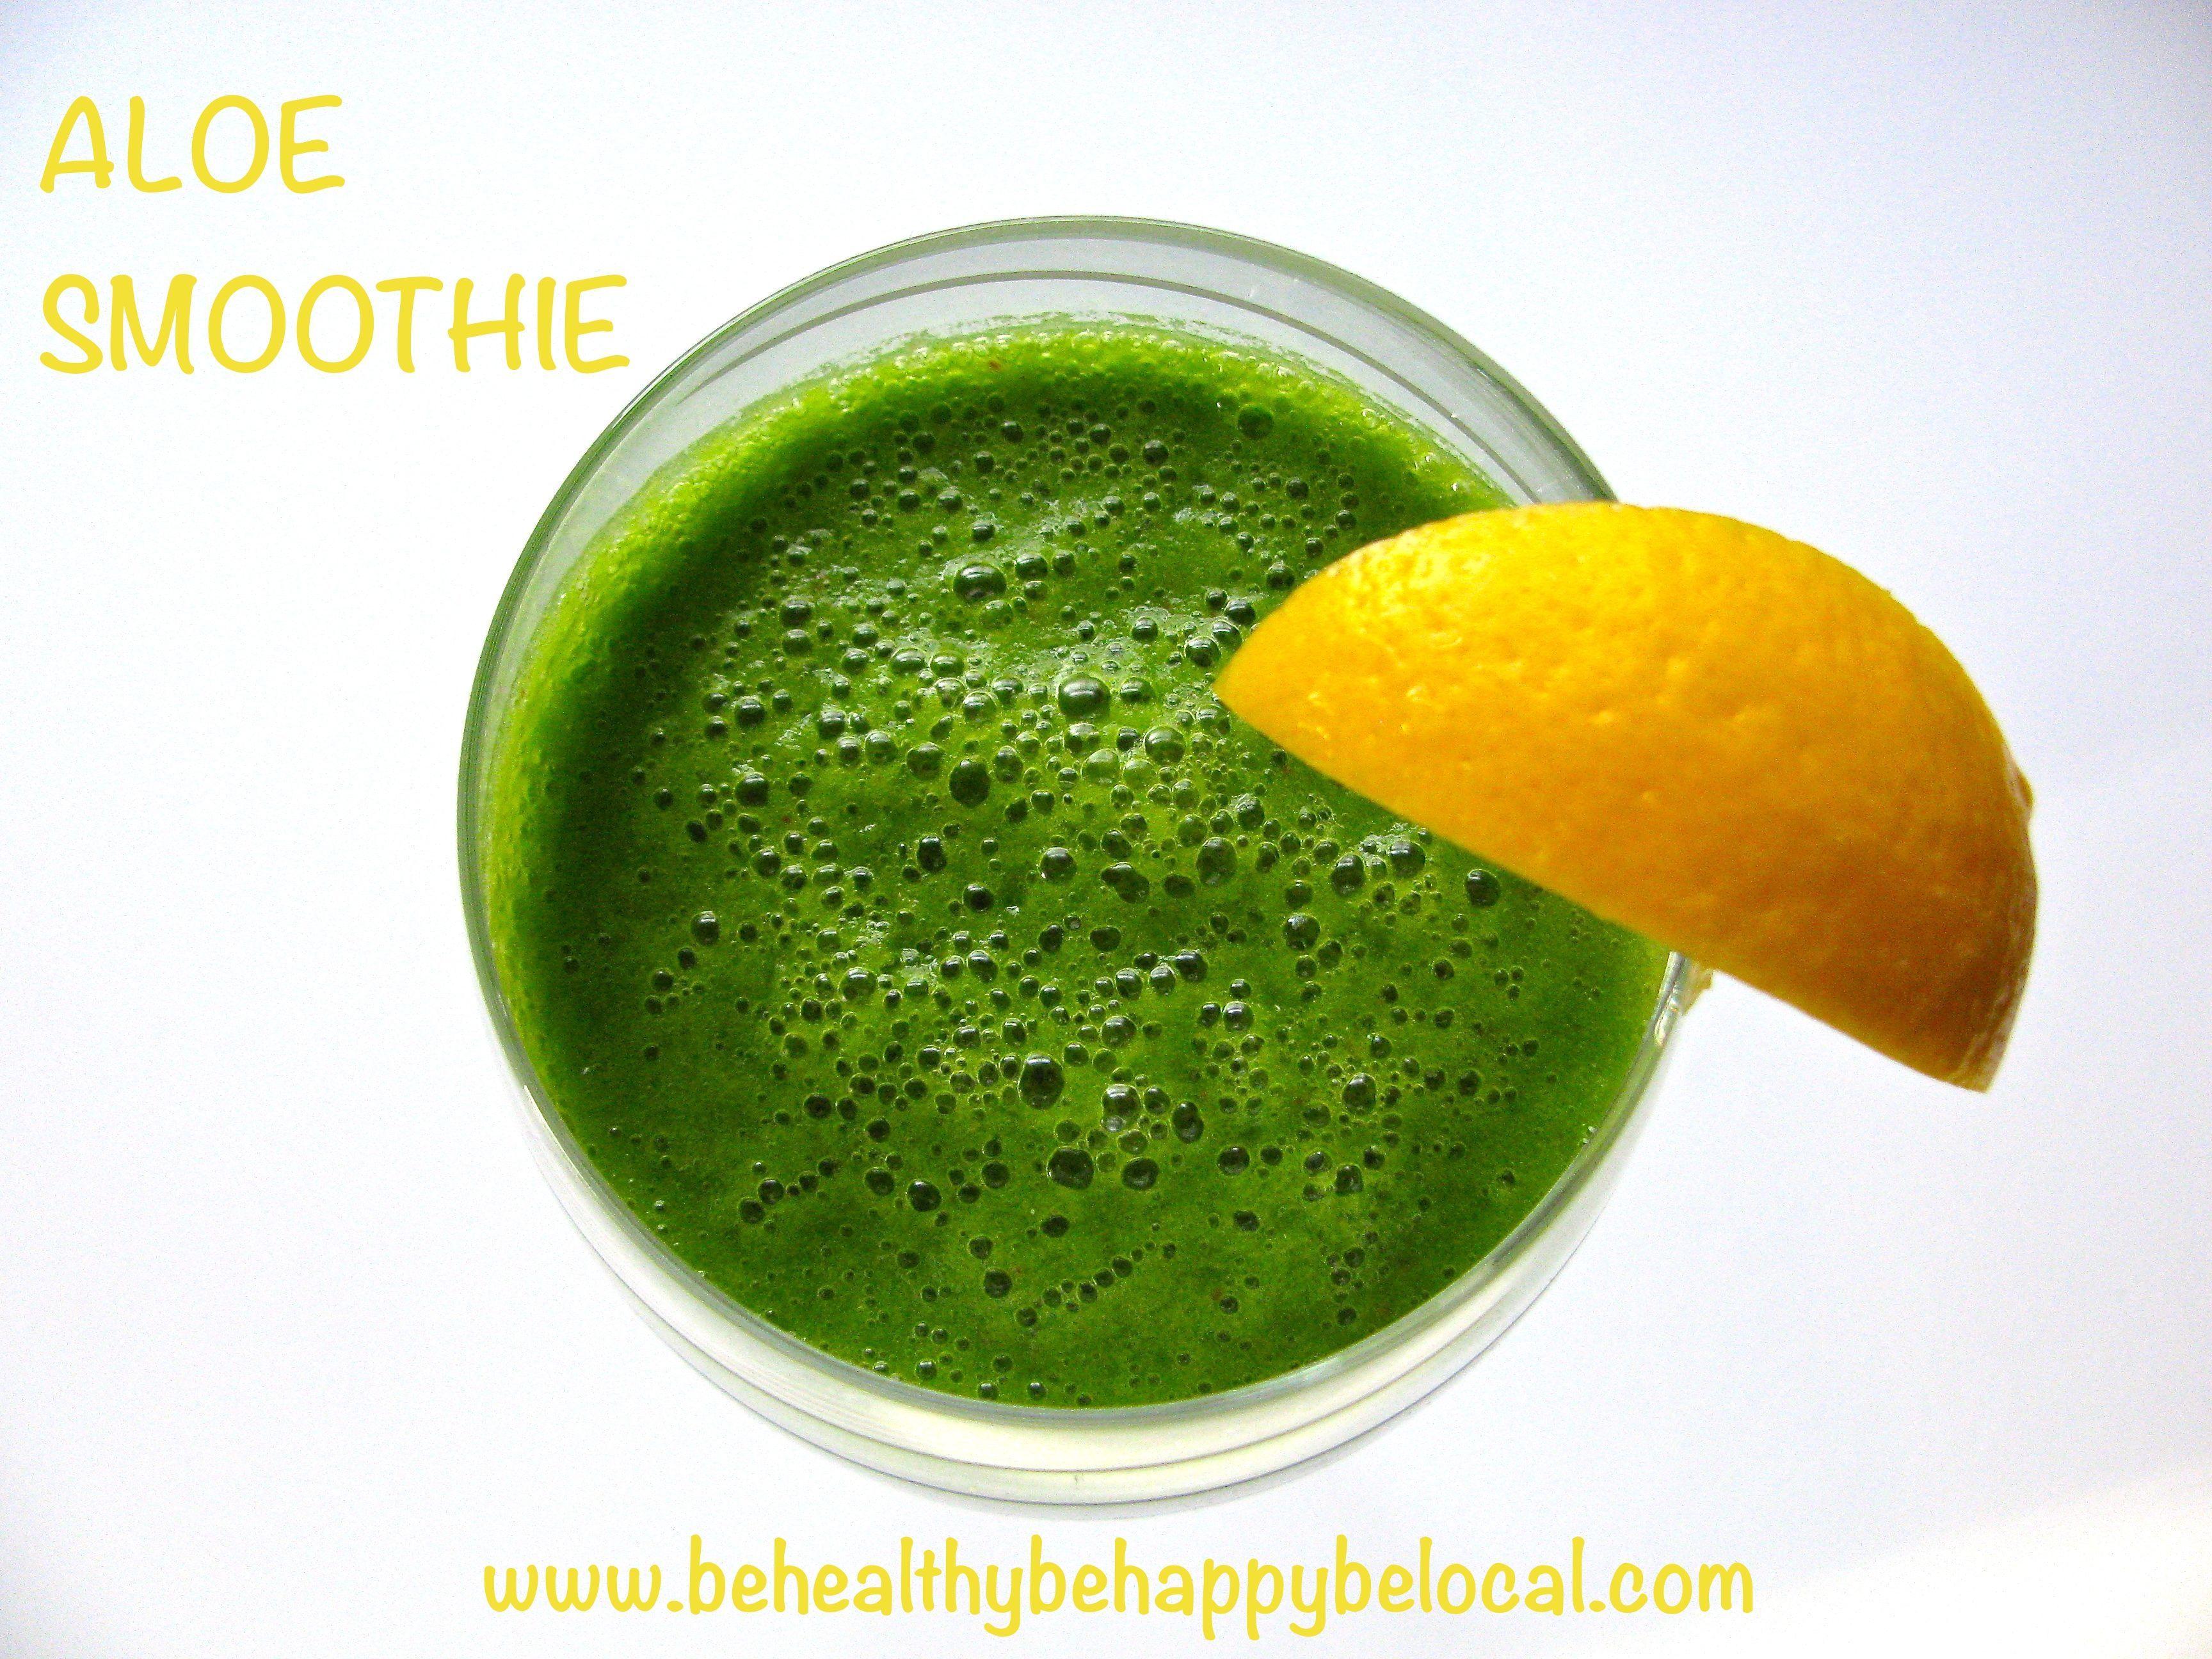 Delicious green smoothie with a special ingredient - Aloe! #food #recipe #greensmoothie #aloe  www.behealthybehappybelocal.com